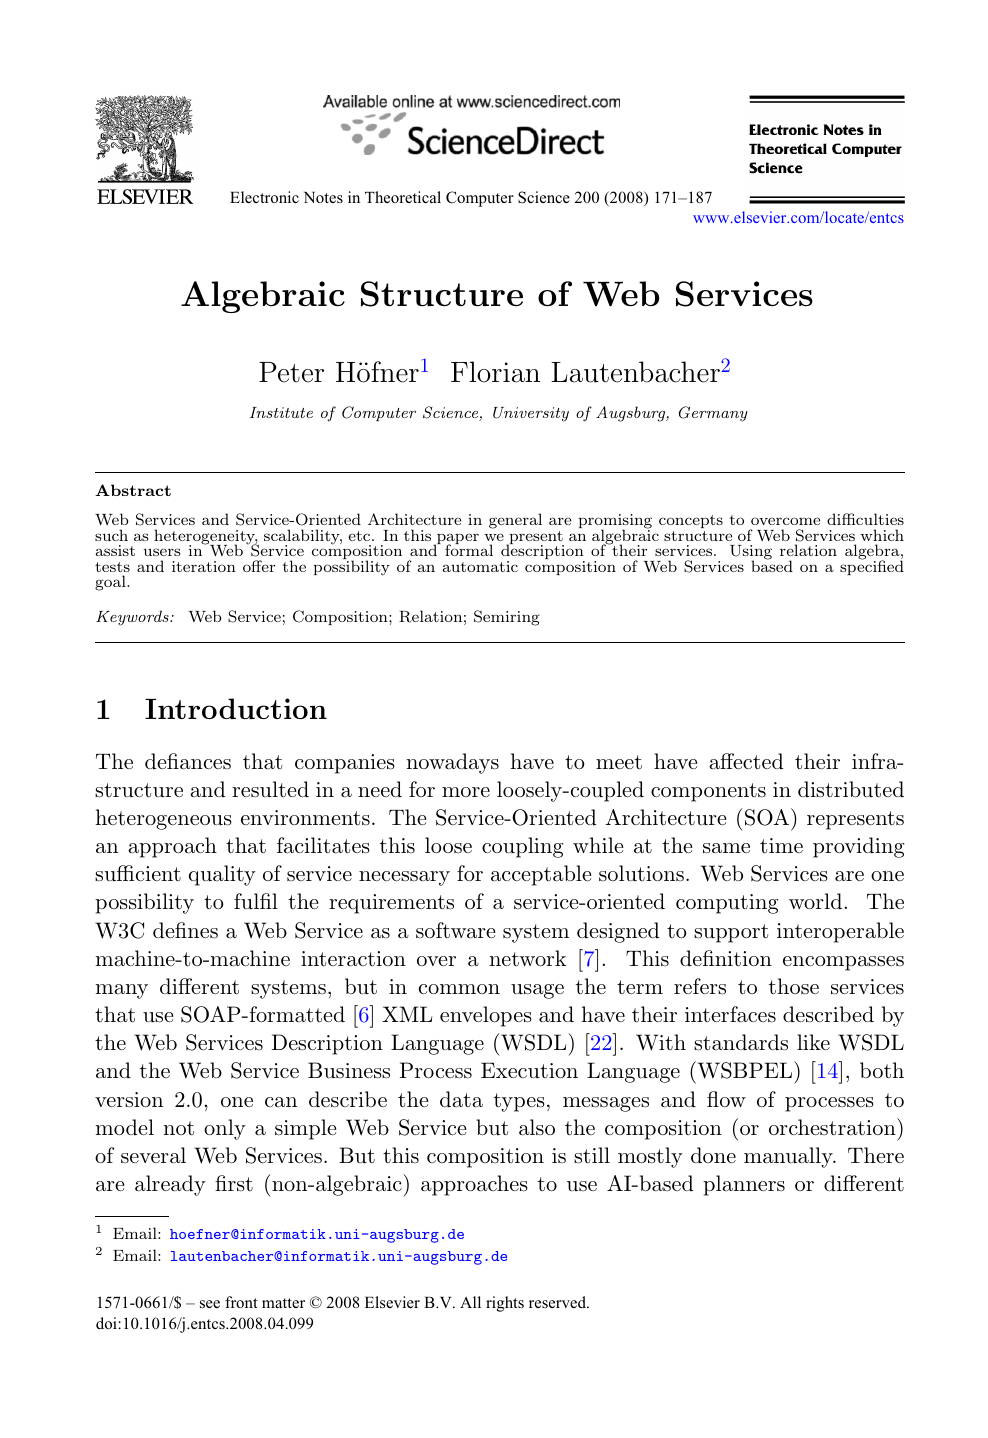 Web services research paper